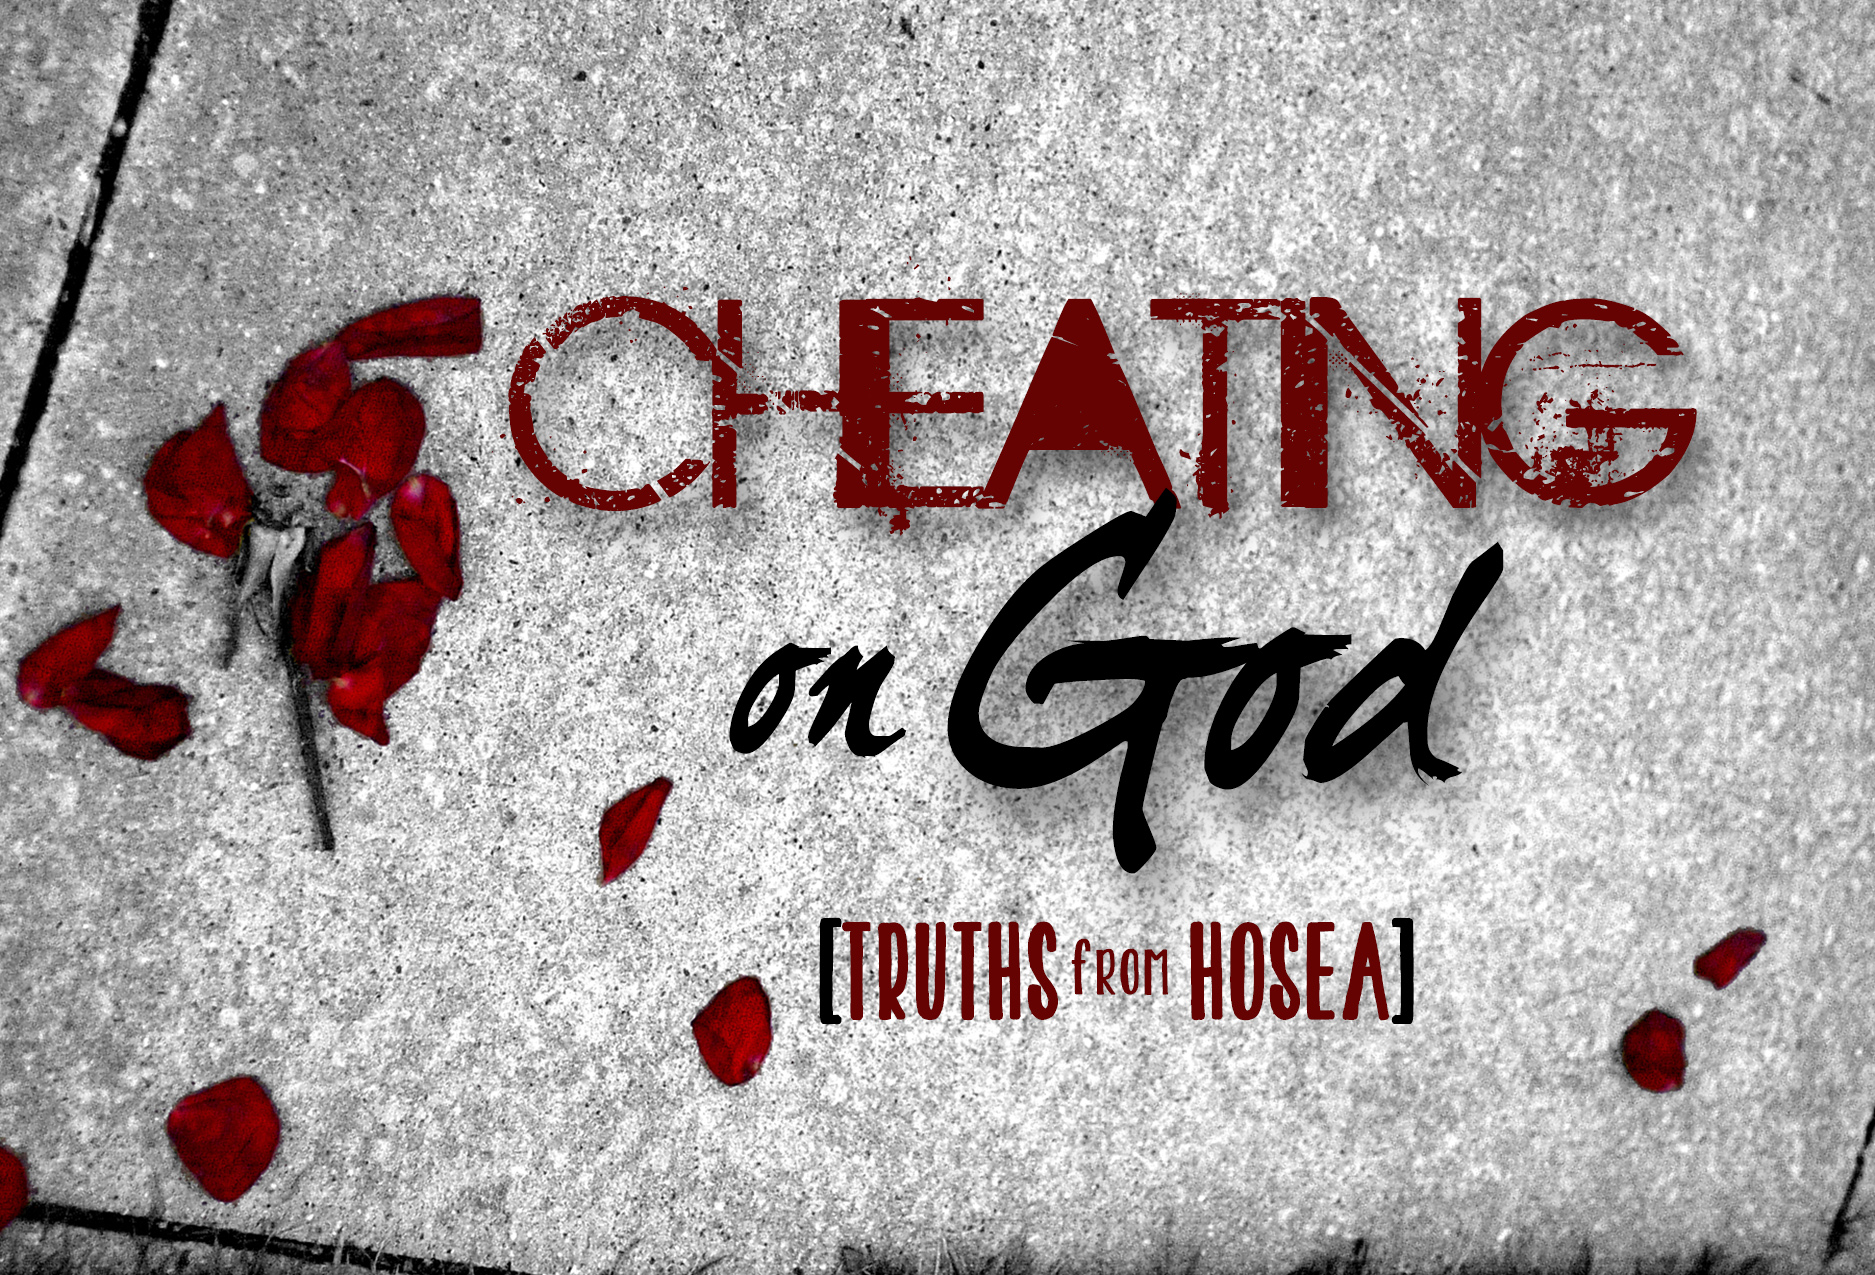 Cheating on god